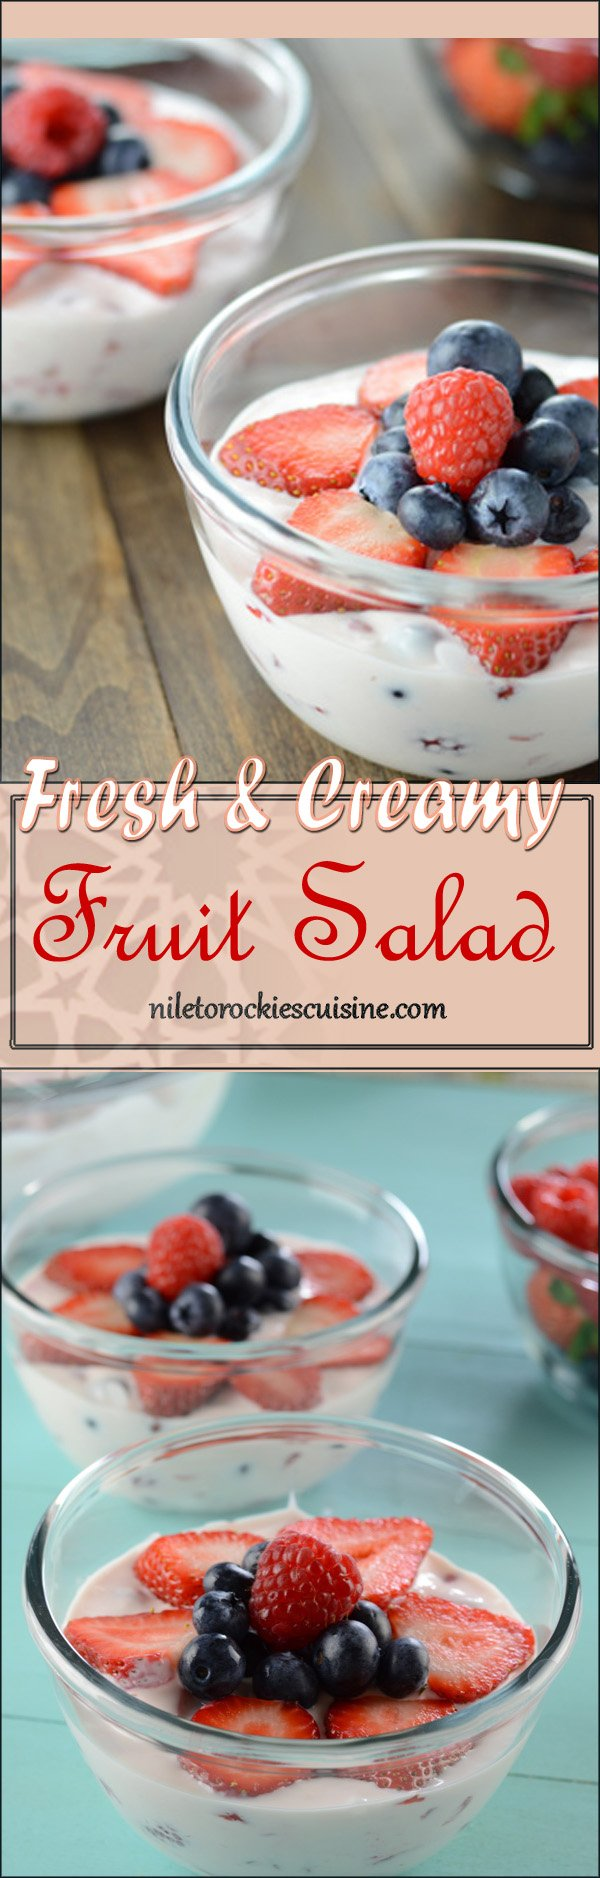 Use seasonal fruits to pamper your guests in your next party, indulging together in this creamy fruity heaven. Finally a recipe for fruit salad for kids.